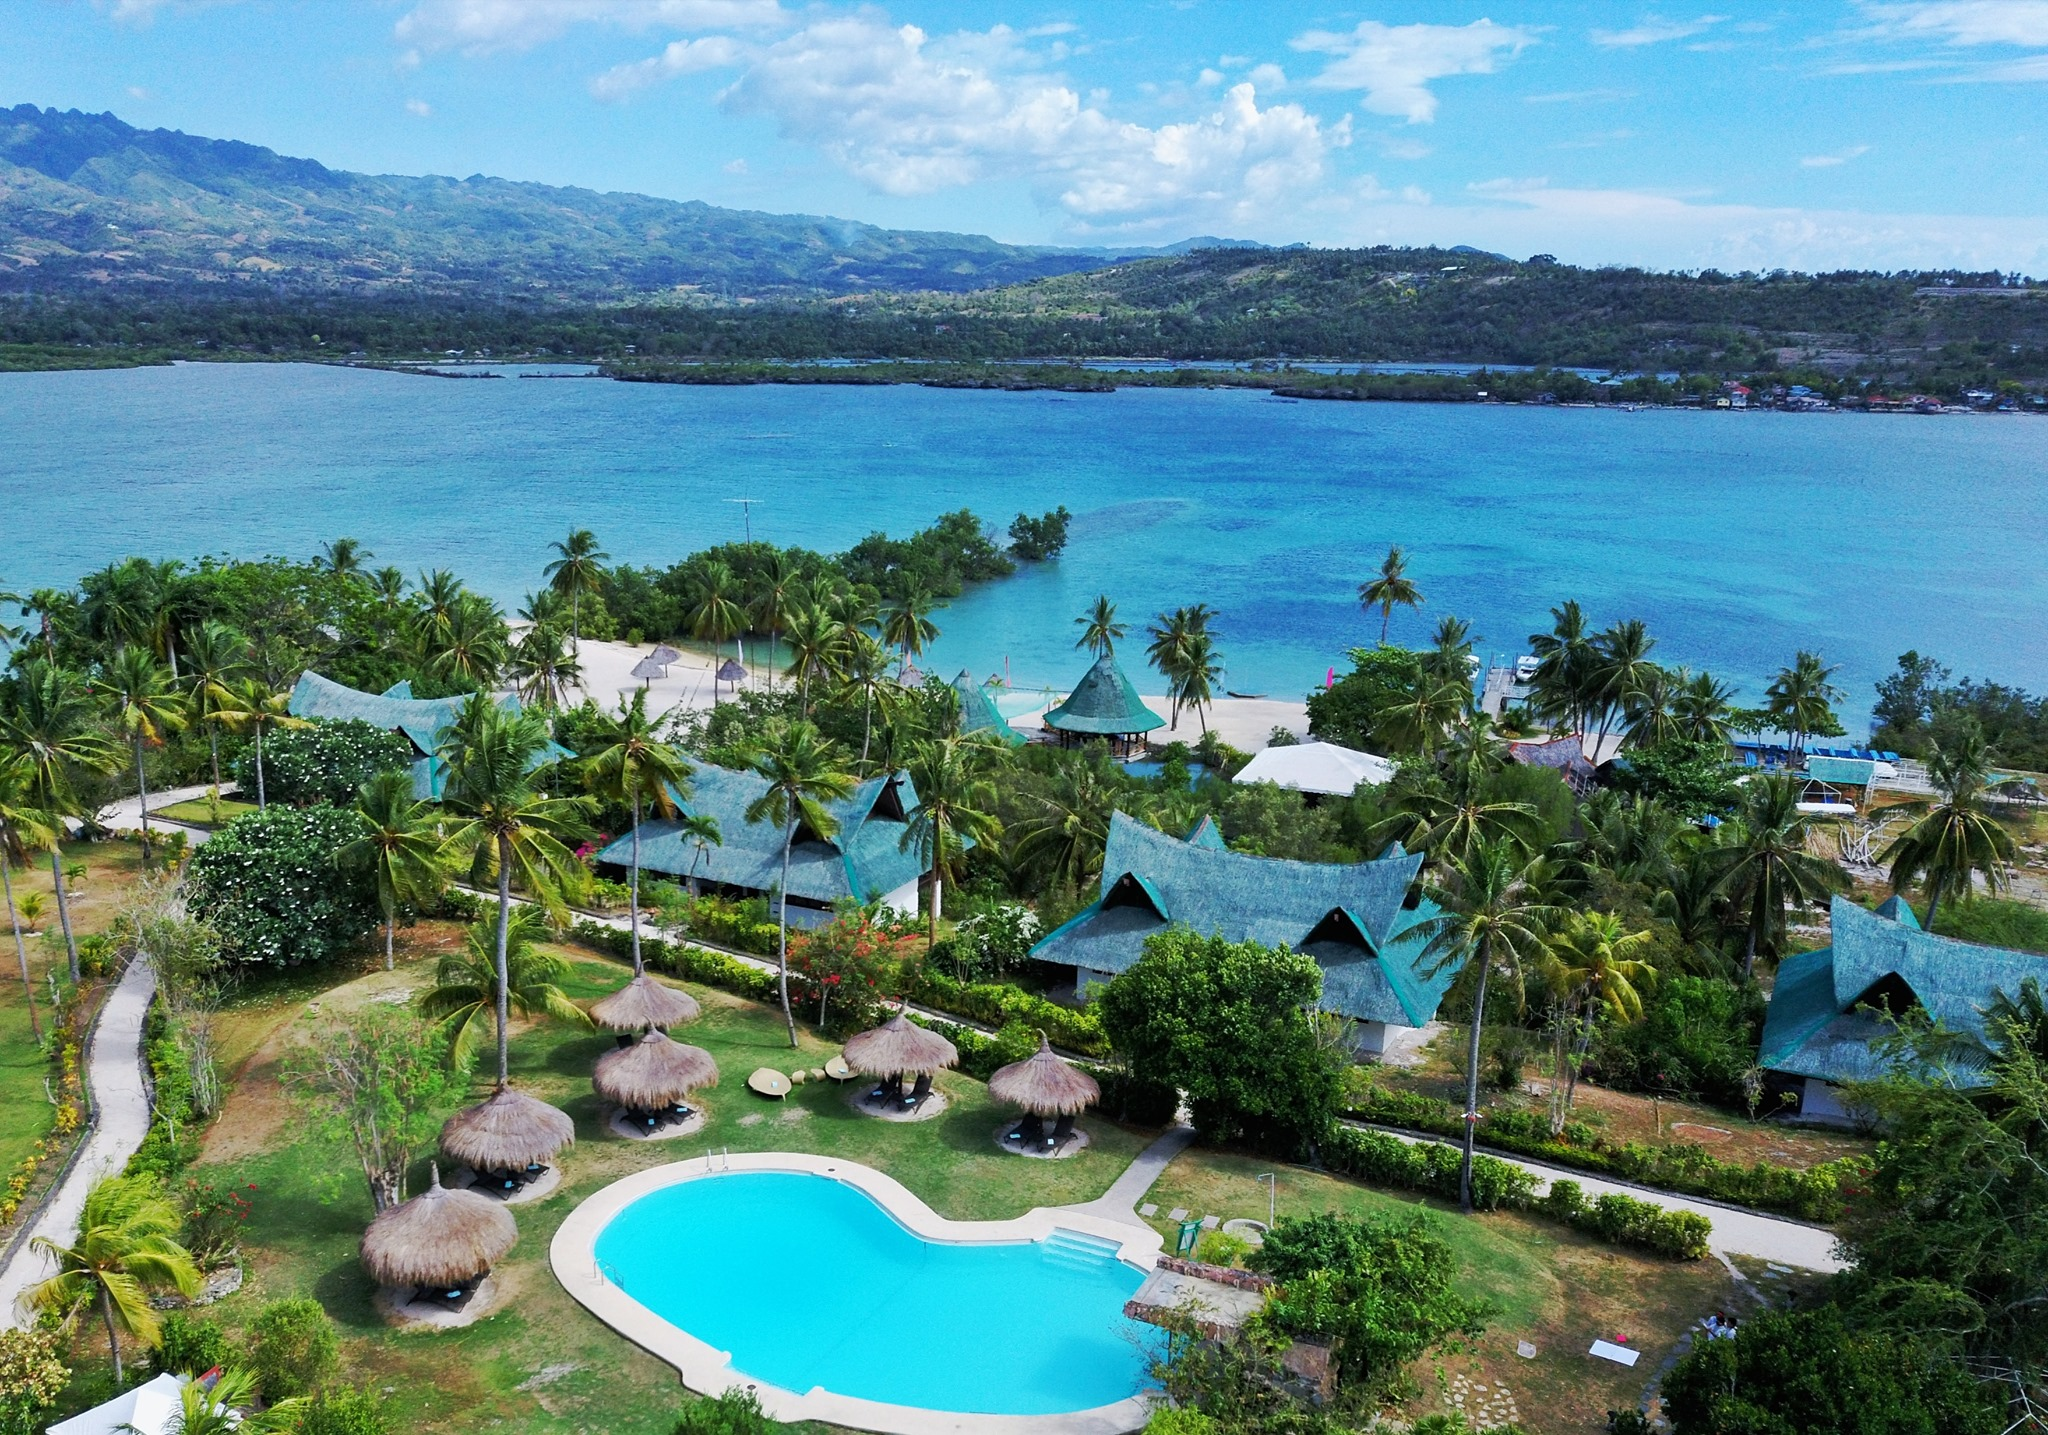 15 Best Hotels and Resorts in Cebu Philippines